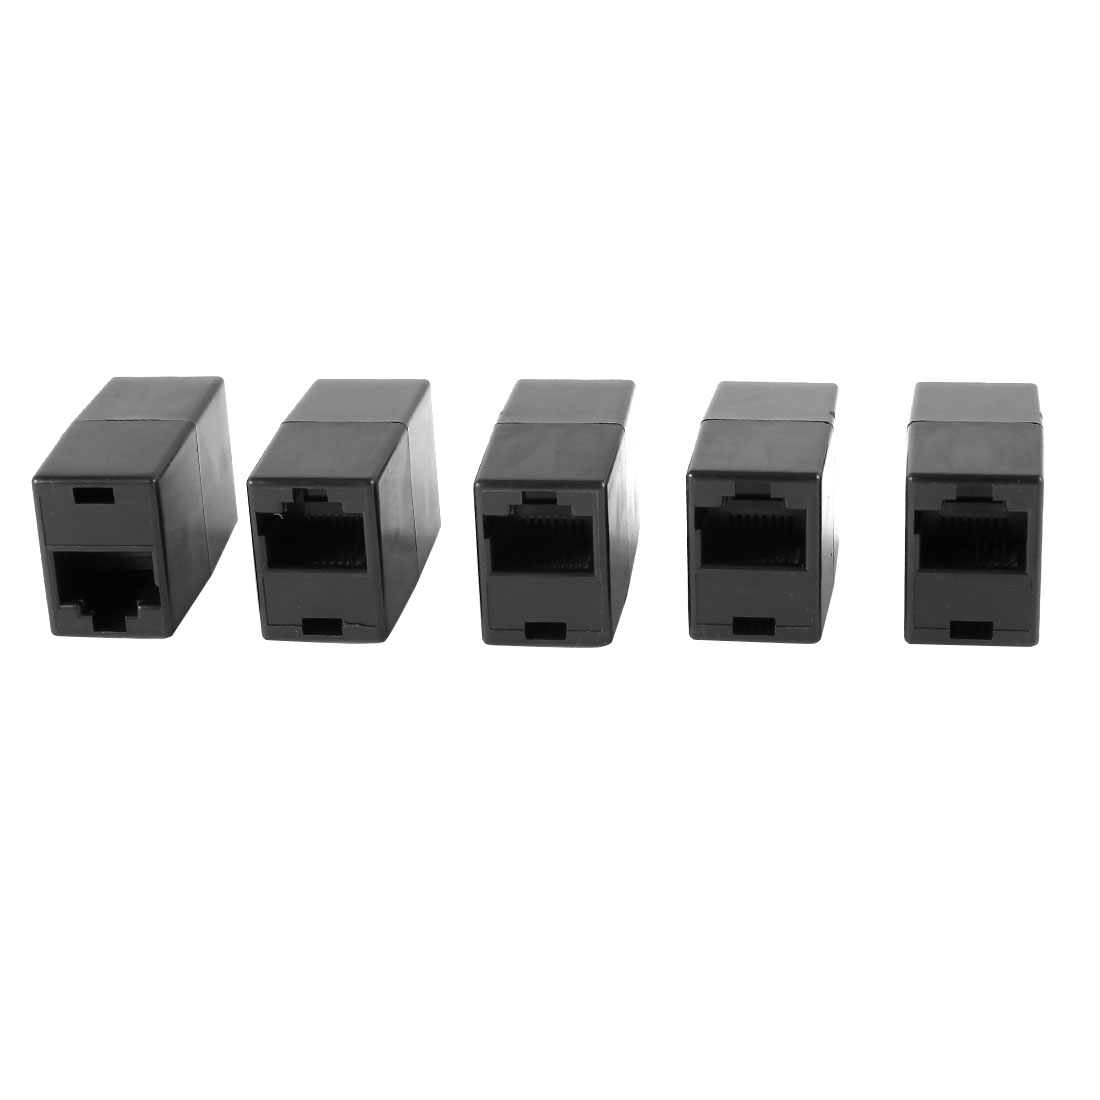 5 Pcs Black 8P8C RJ45 to RJ45 Female/Female Ethernet Inline Connector Coupler